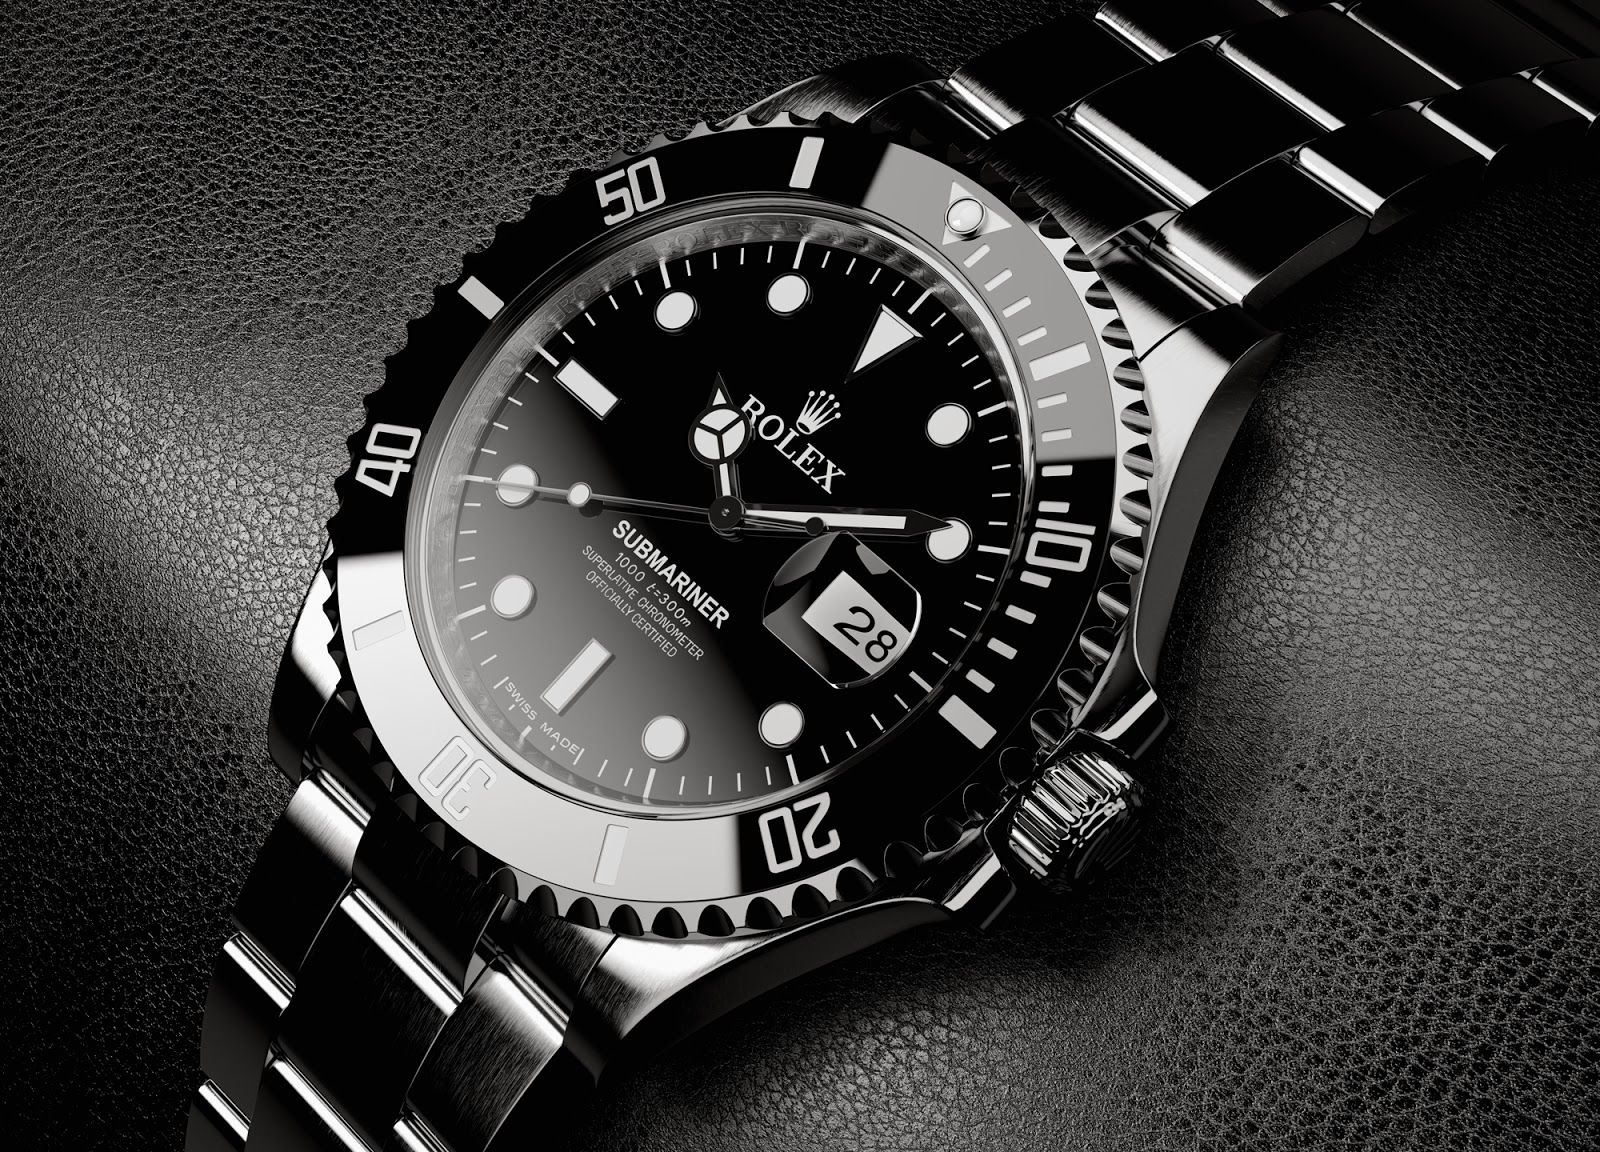 newest stylish watches for men and women too. Vintage Rolex watches